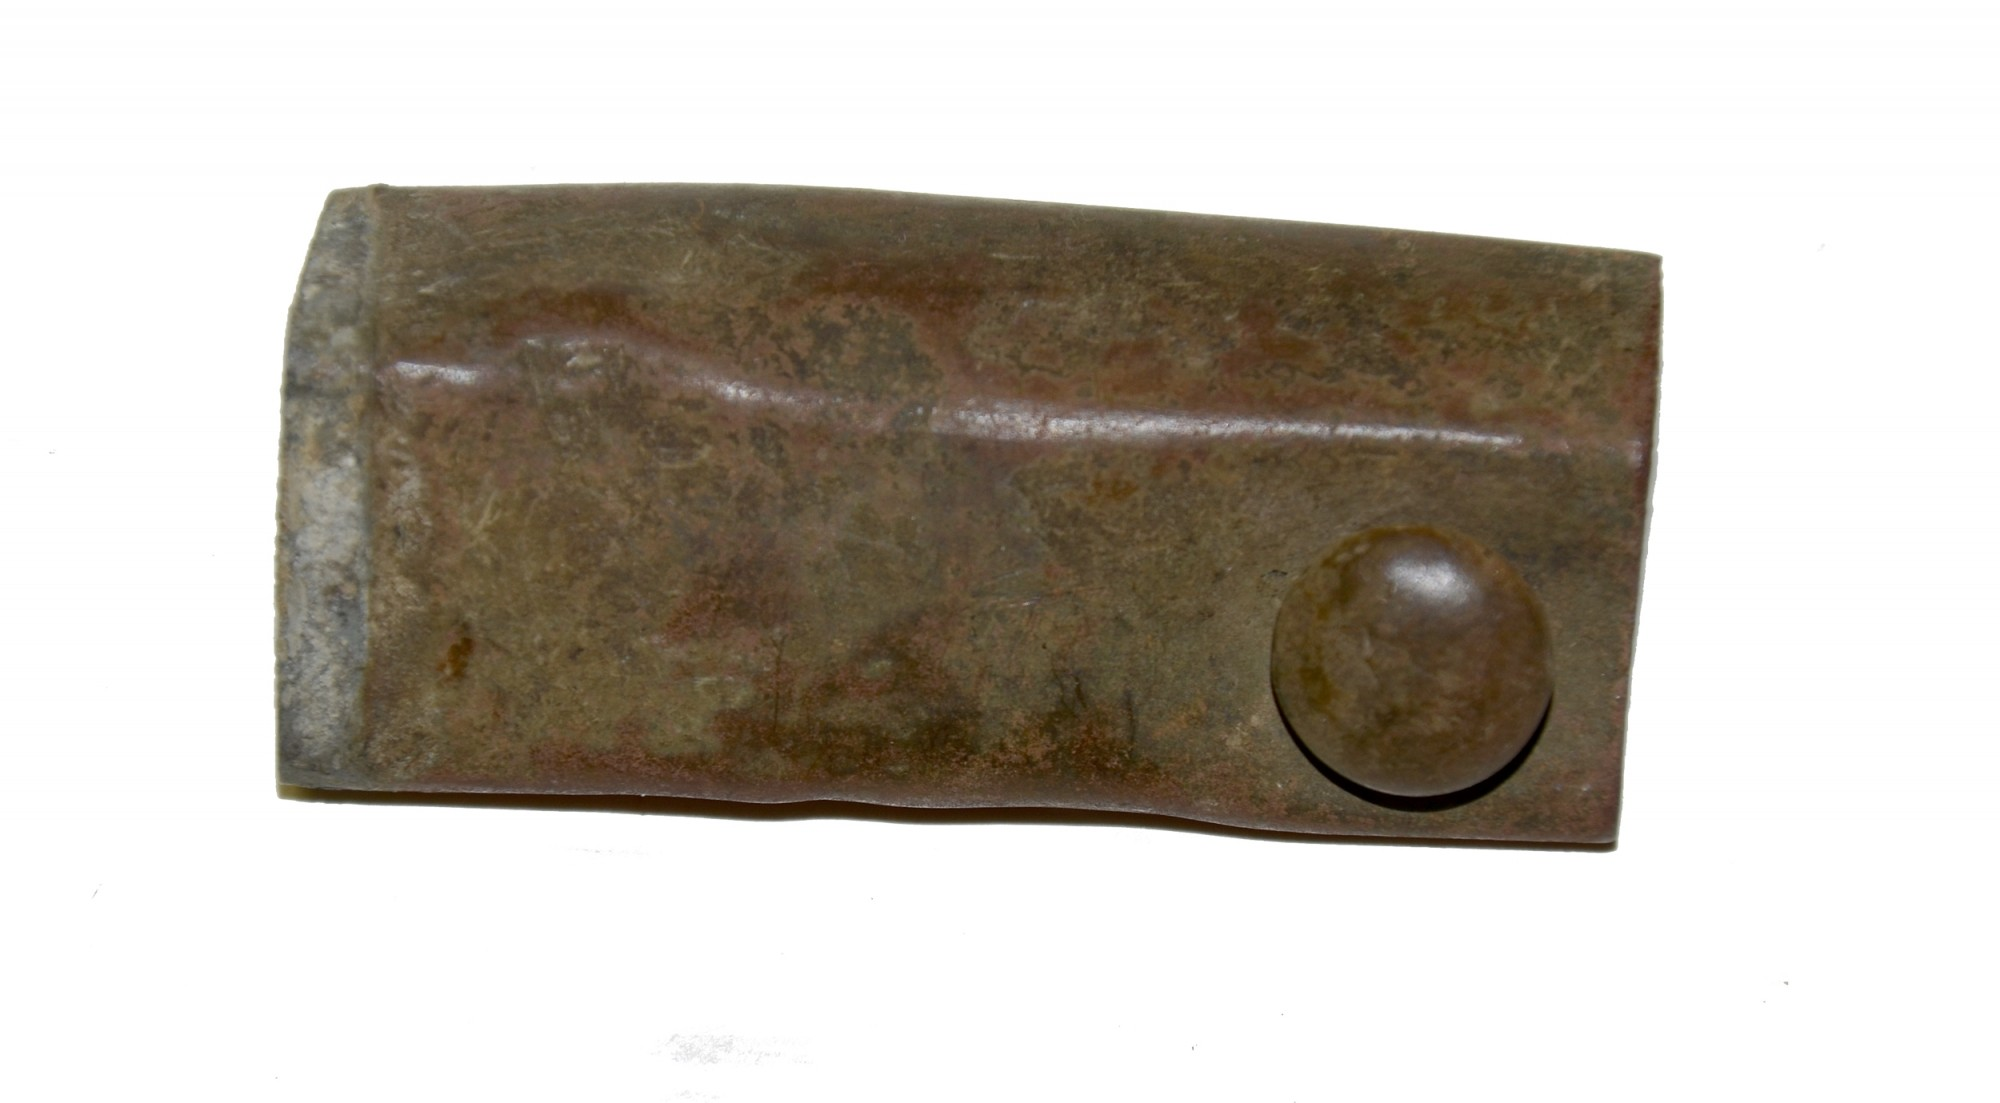 US MODEL 1828 BAYONET SCABBARD THROAT RECOVERED AT THE ROSE FARM, GETTYSBURG